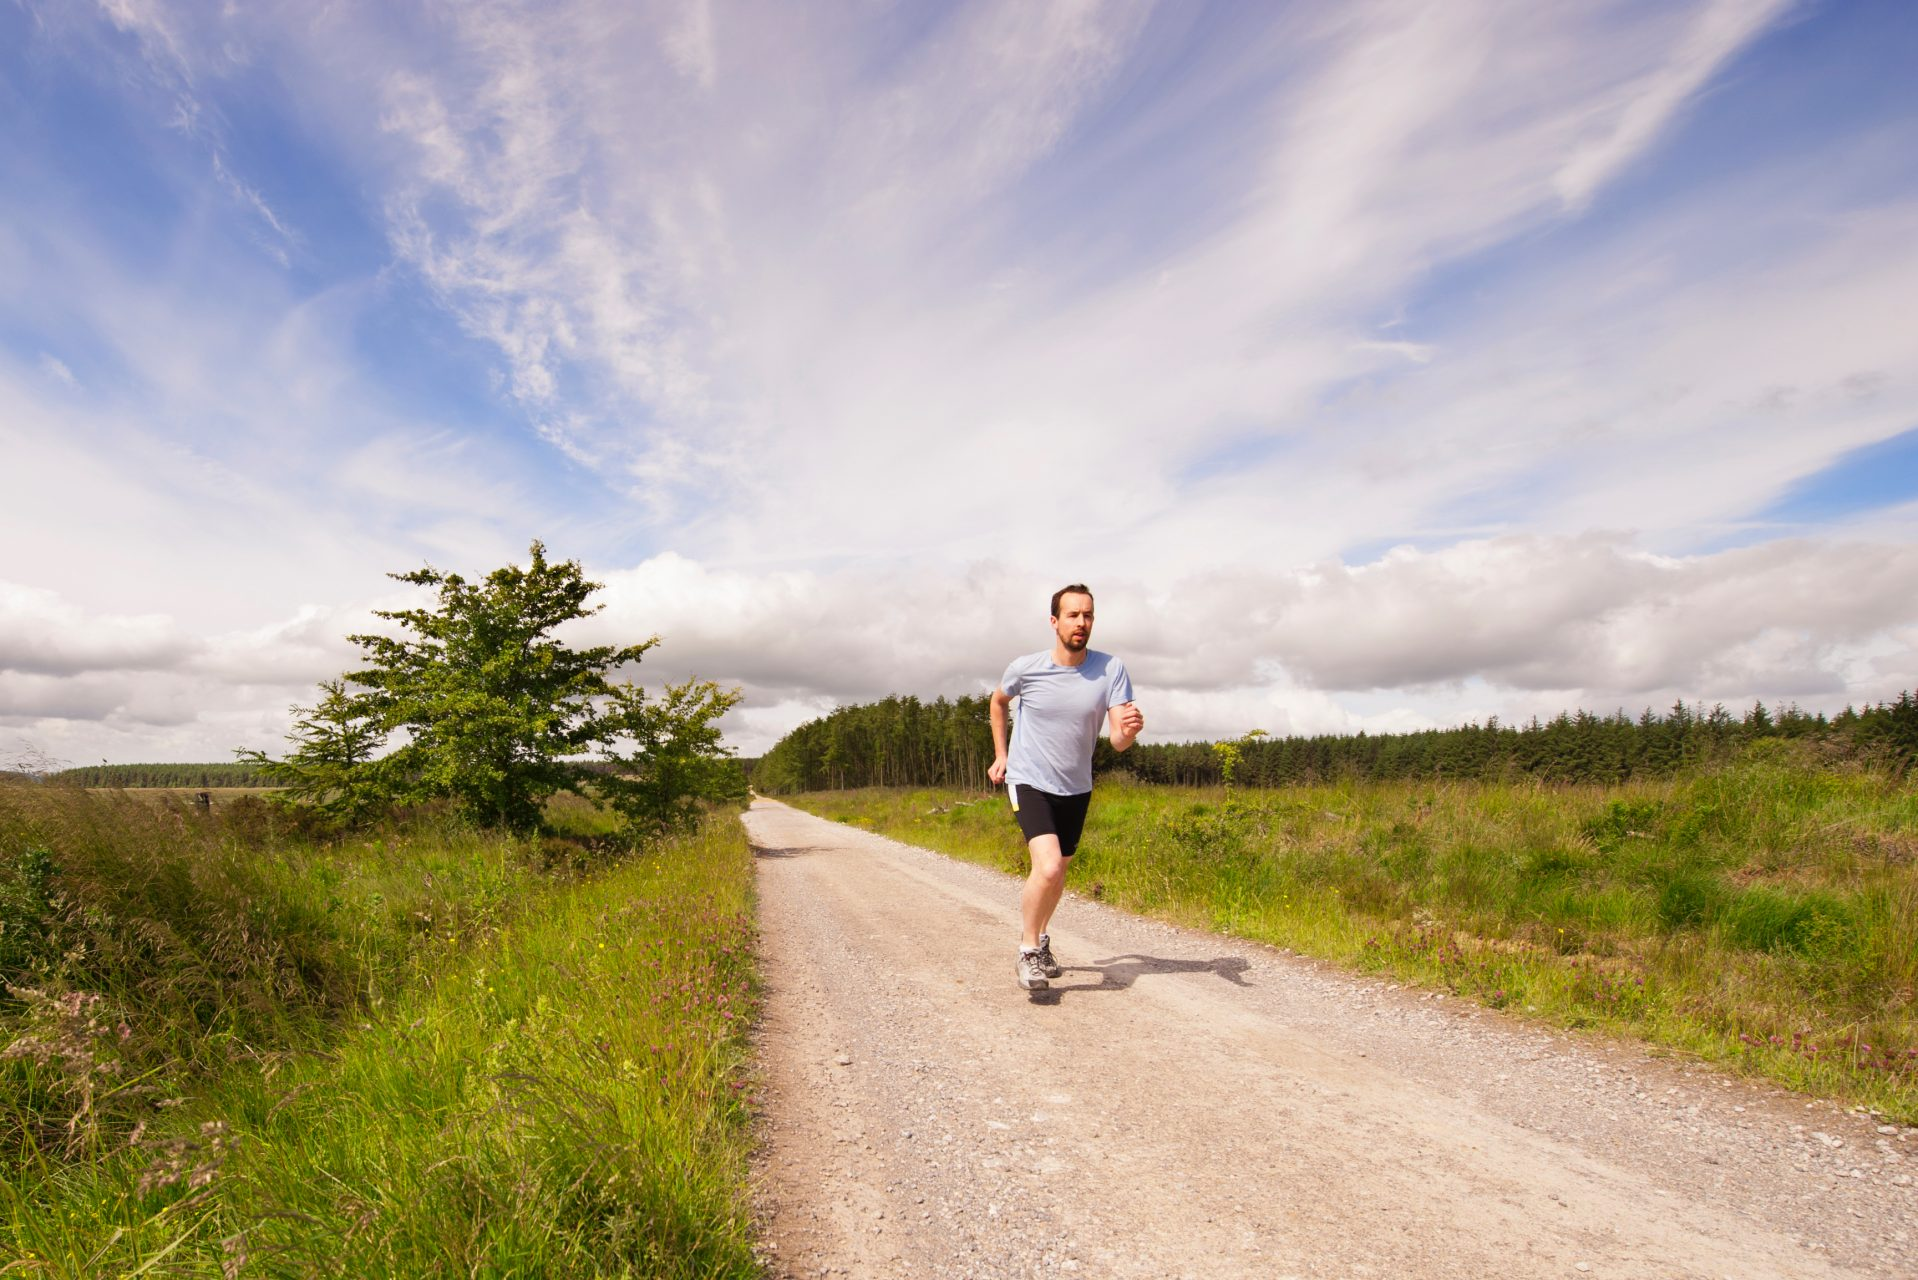 Exercise is vital to stay healthy but our lives don't encourage much activity